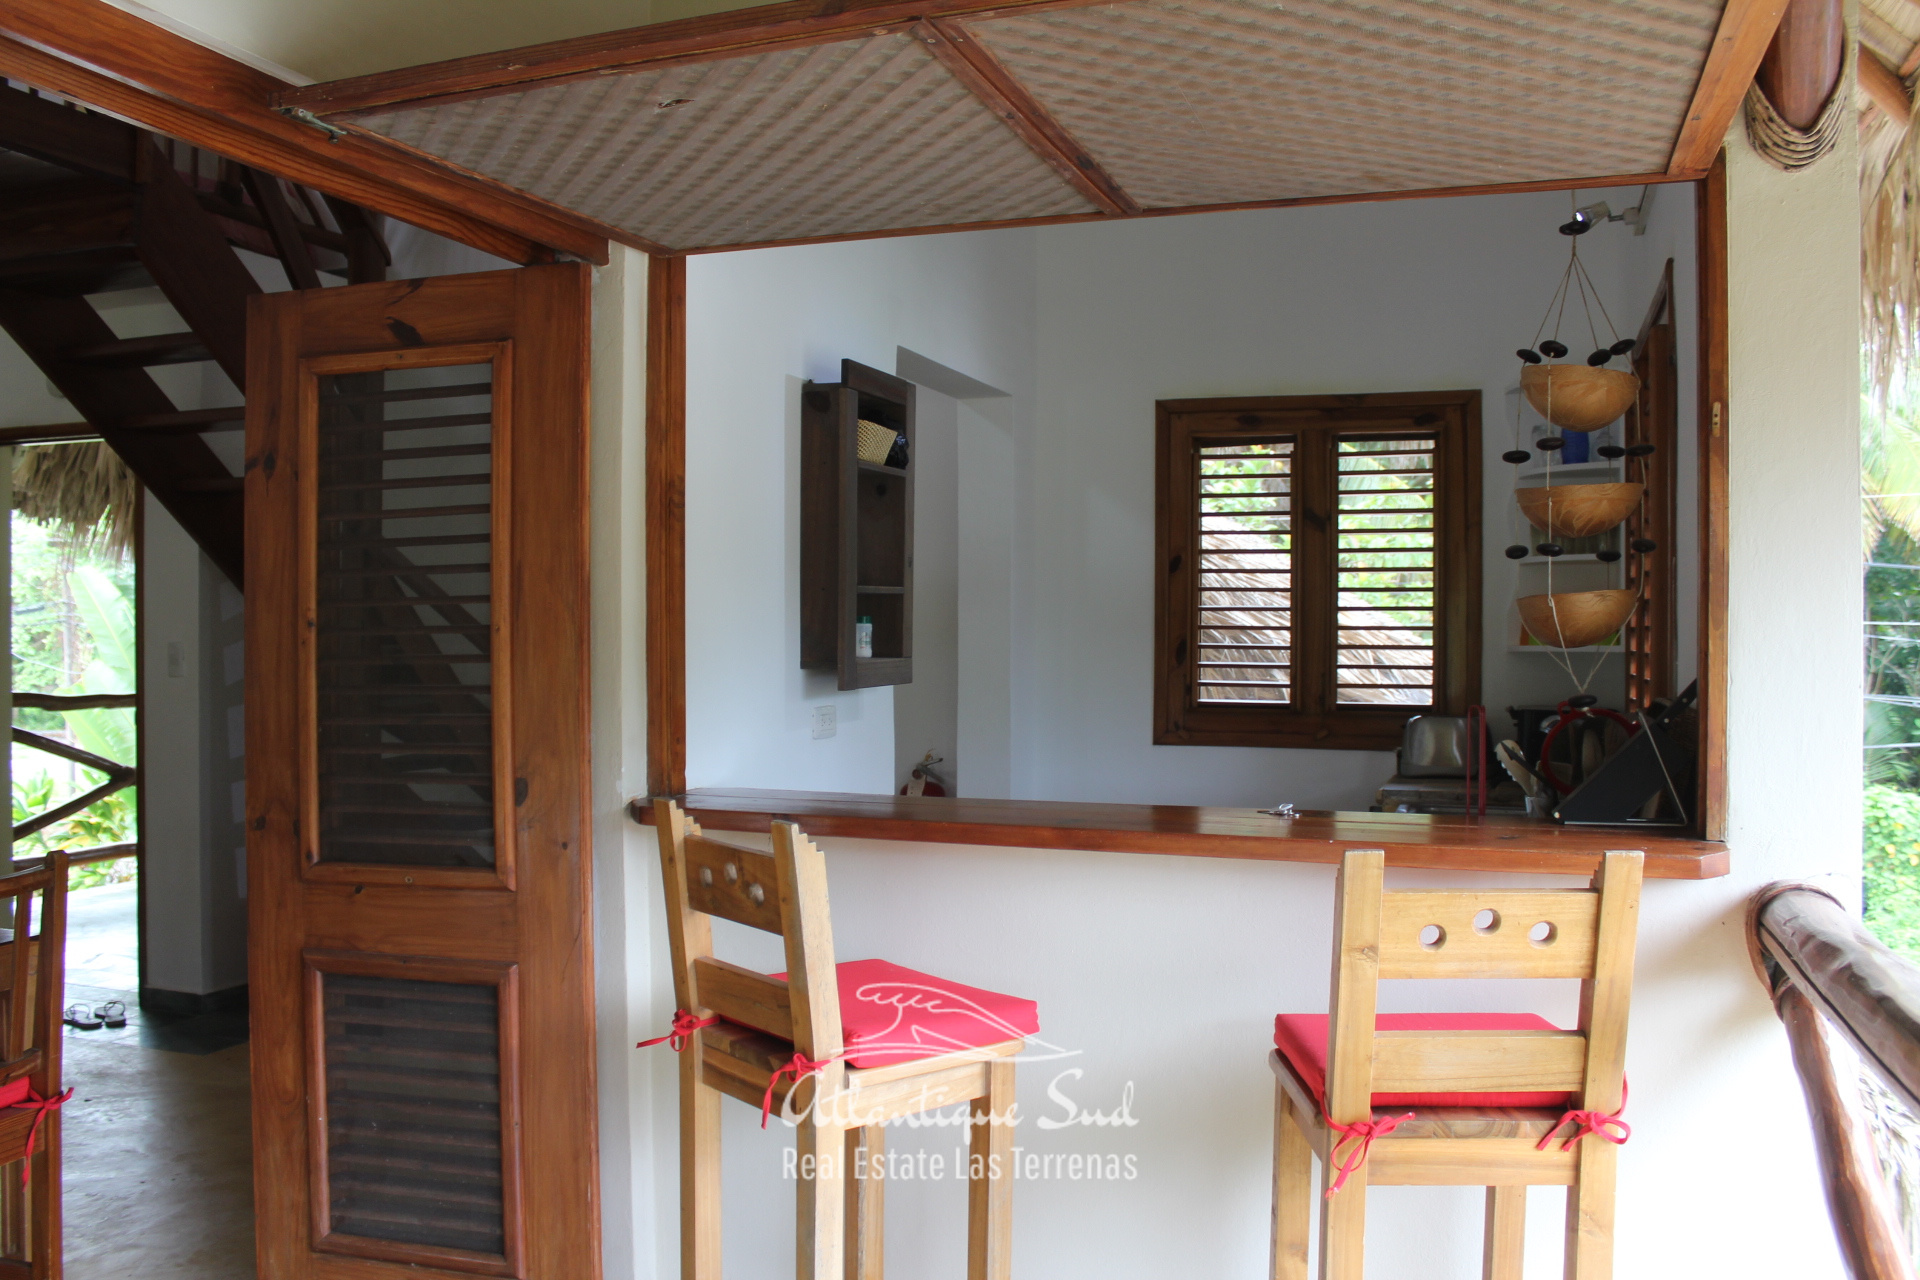 For-sale-Apartment-in-beachfront-community-with-mezzanine-Las-Terrenas_4827 (1).JPG